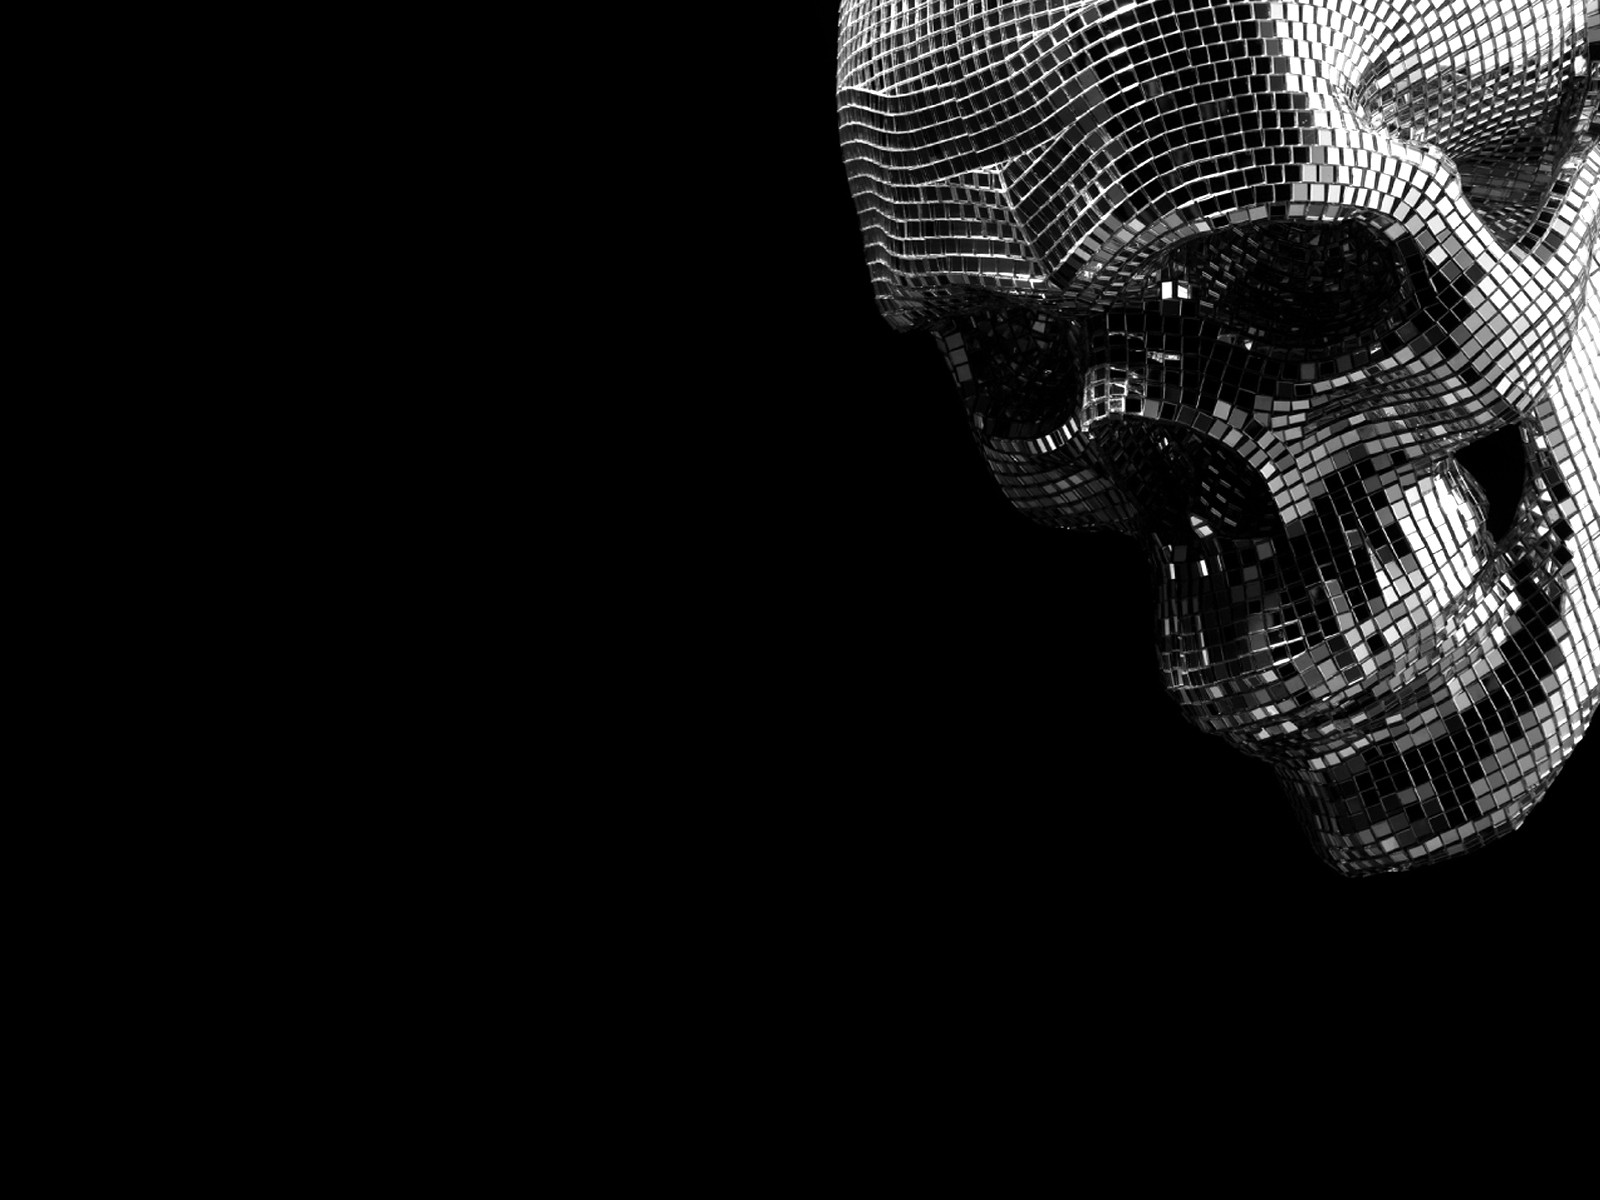 Scary Wallpapers Scary Wallpaper Skull Compilation Hd Wallpaper